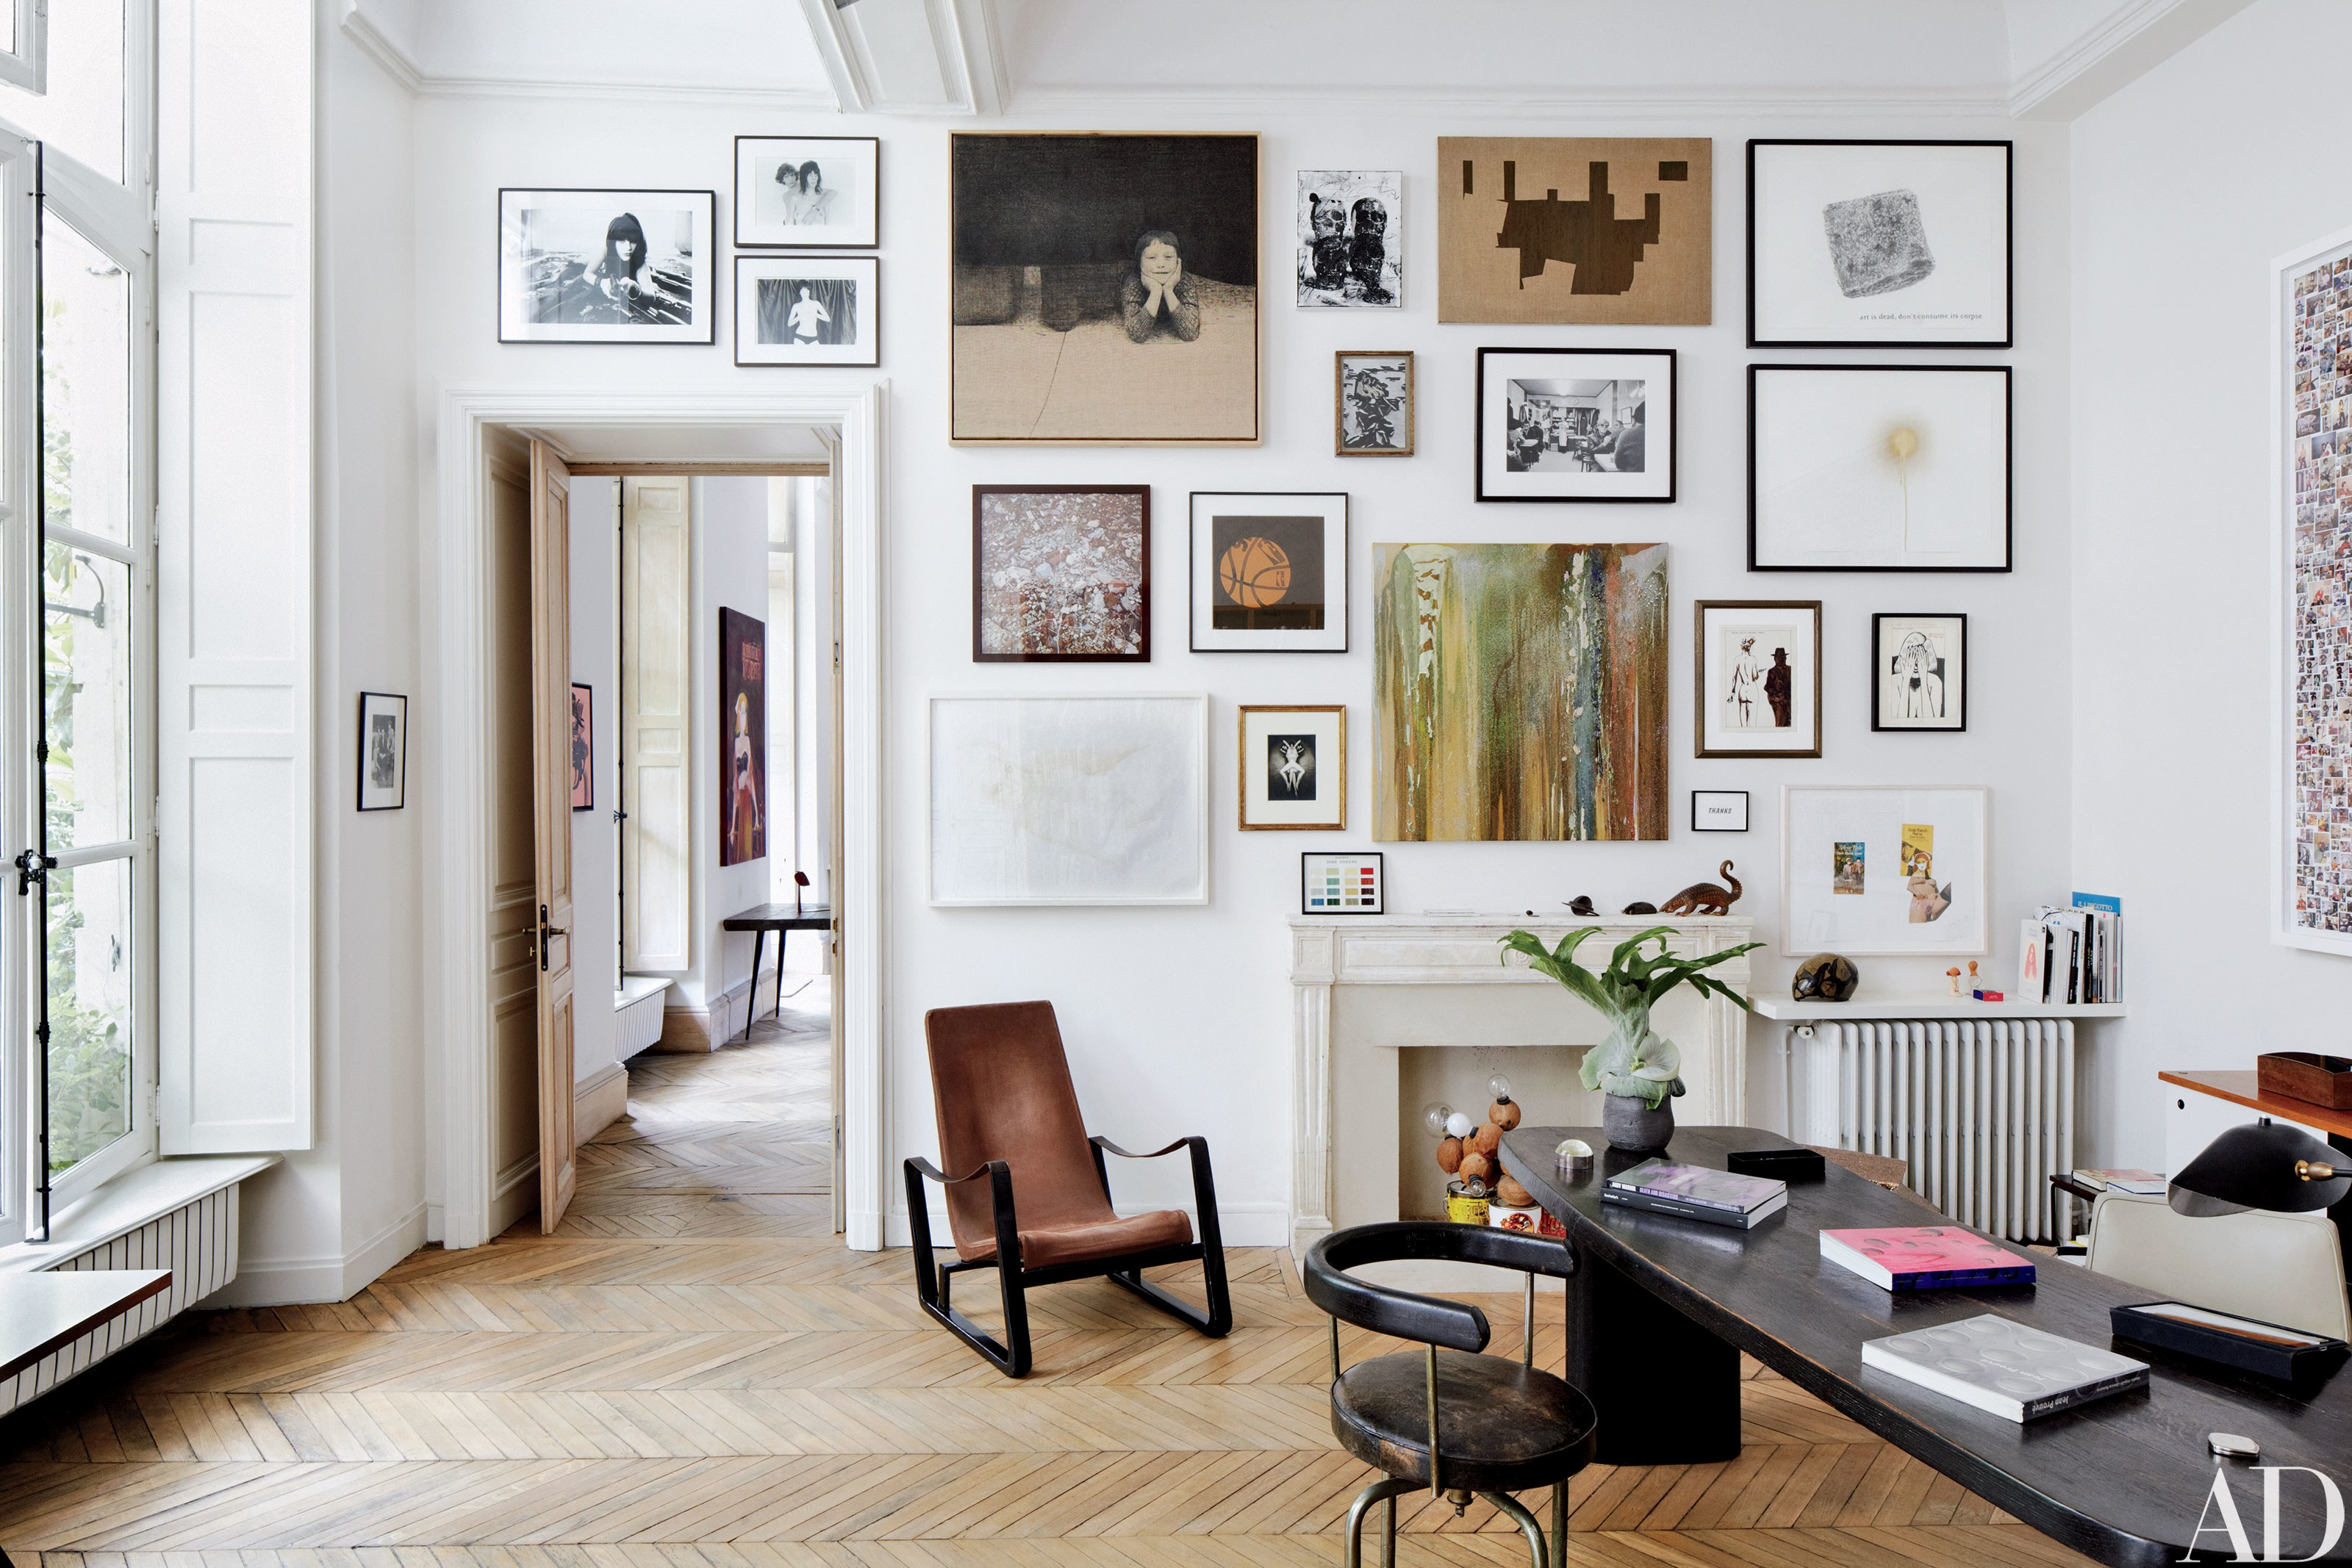 10 Famous Wall Decorating Ideas Living Room 11 wall decor ideas for small homes and apartments architectural 2 2021